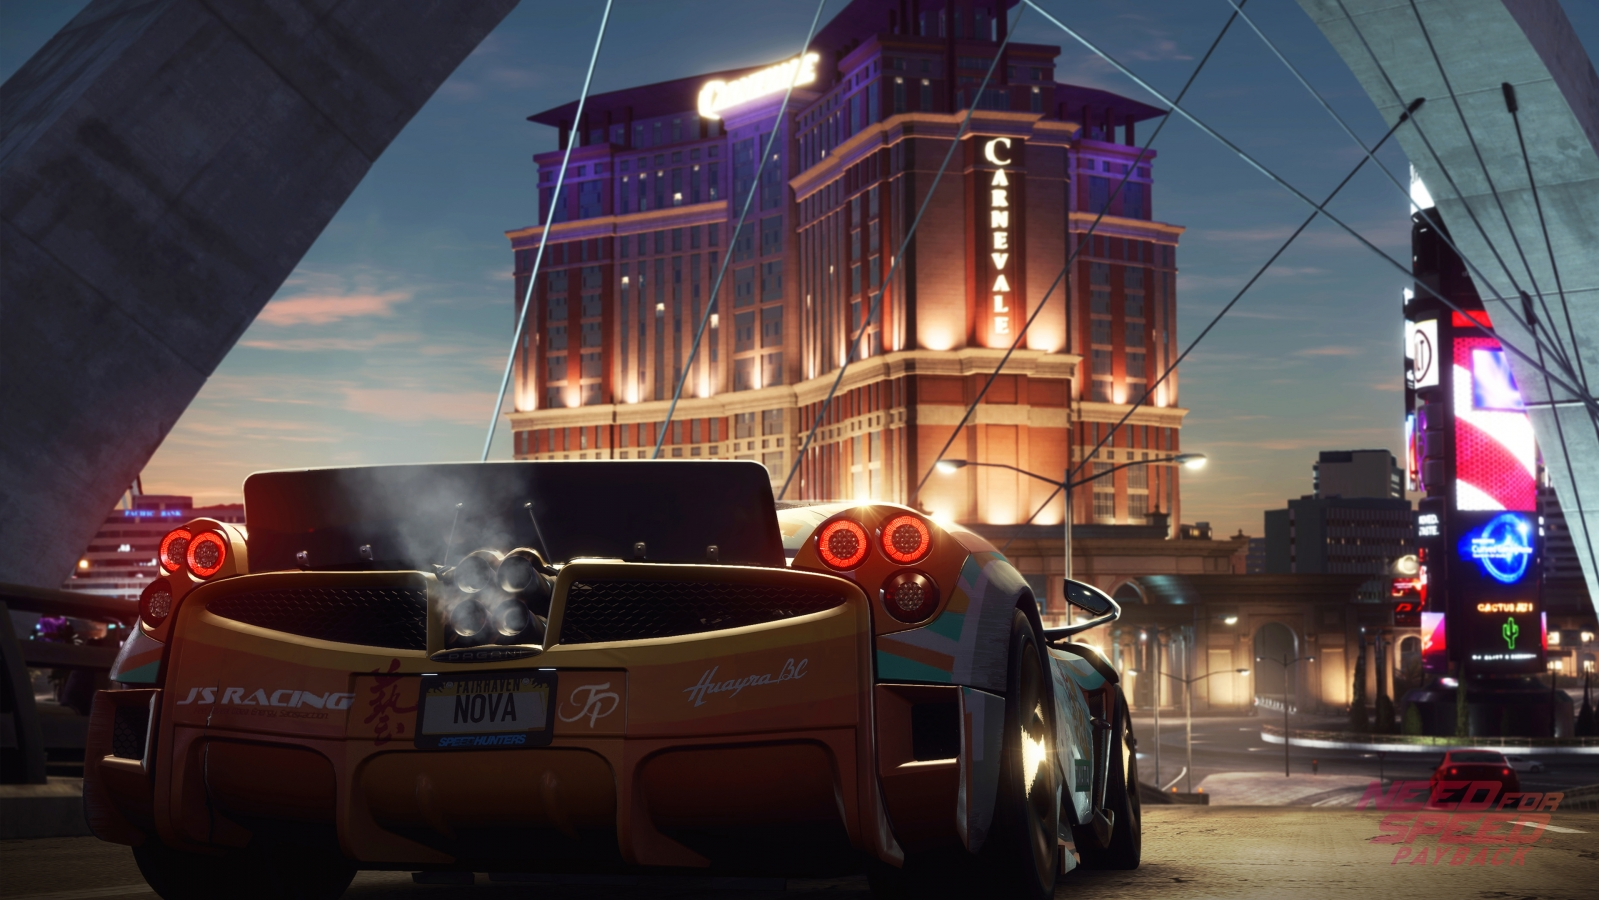 need For speed payback 3838x2160 racing game playstation 4 xbox One 10271